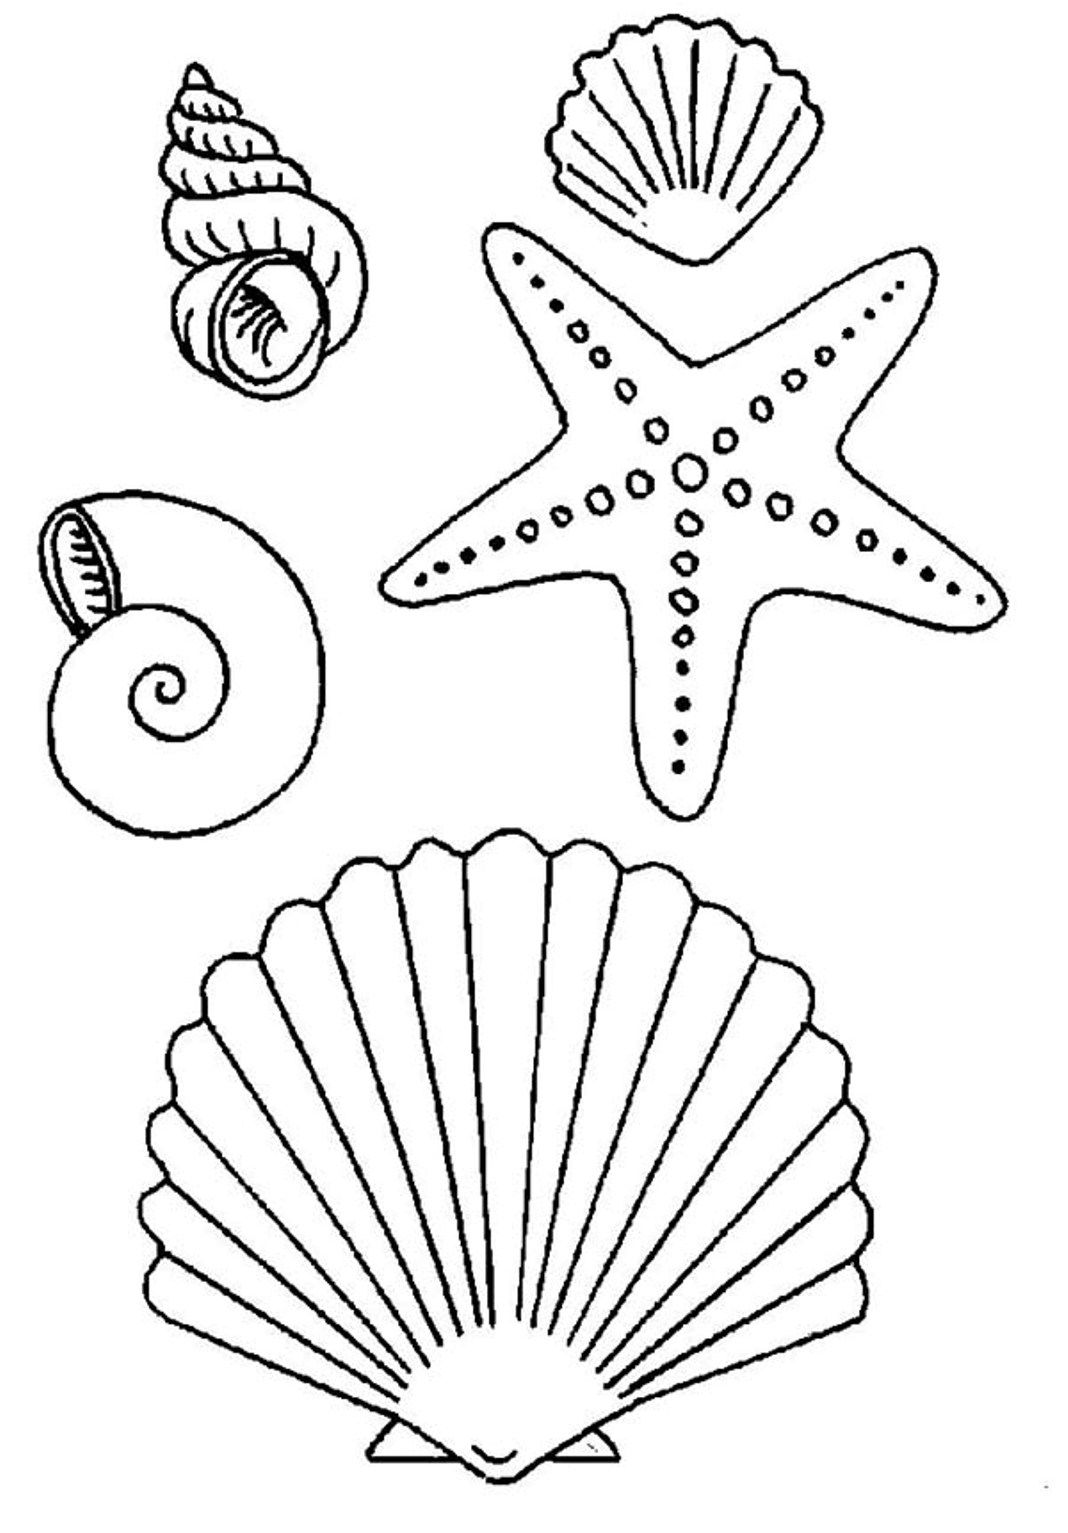 Images For Simple Seashell Drawings tattoos i want Pinterest